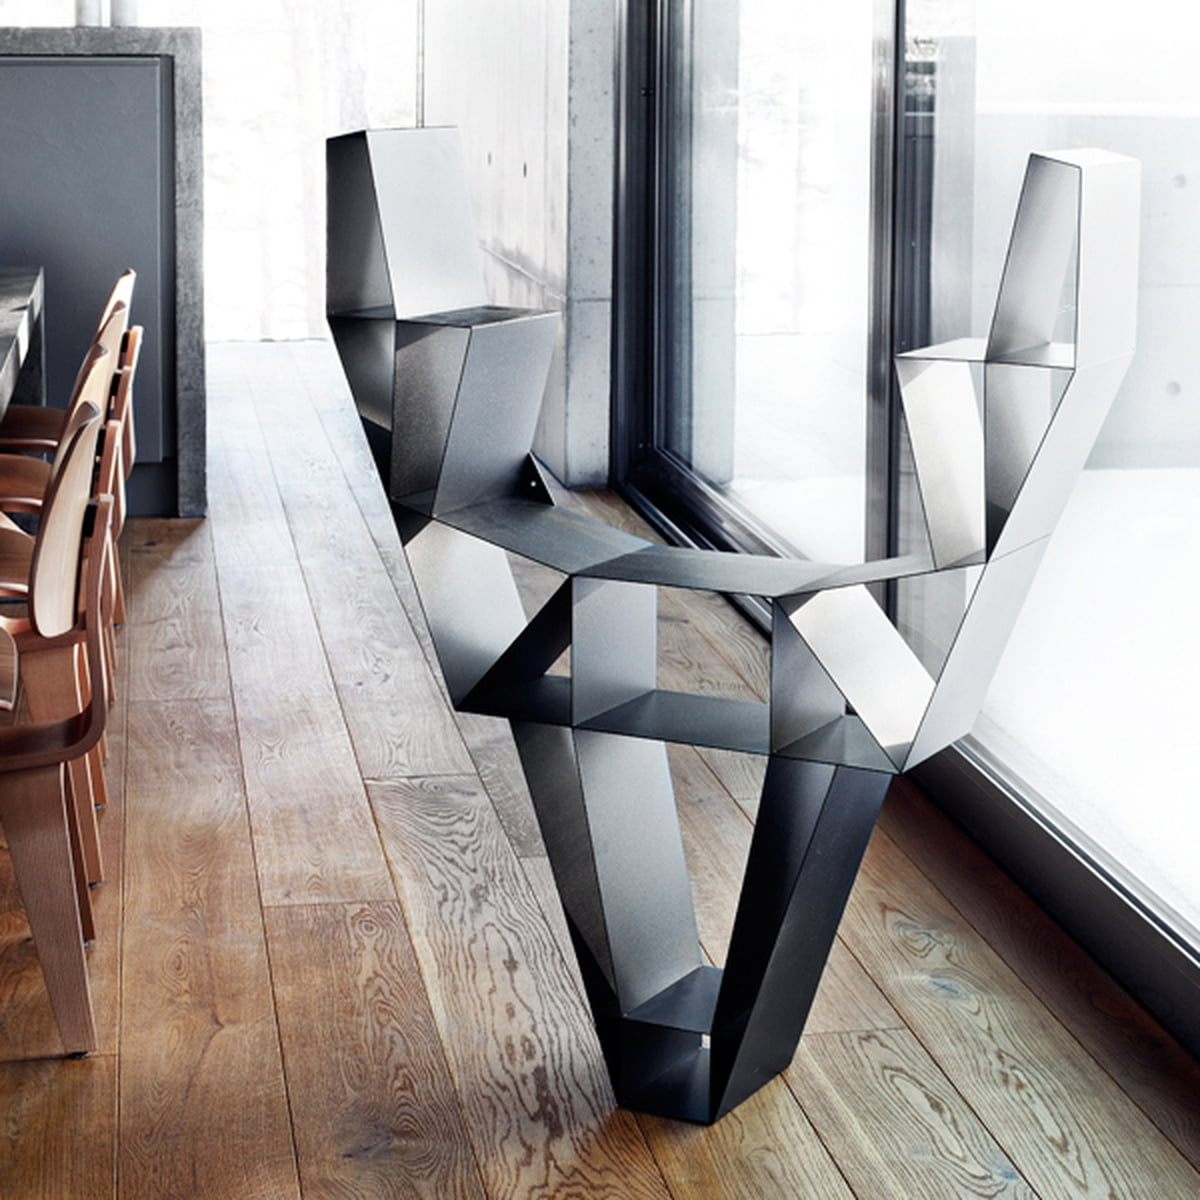 metallregal schwarz klein. Black Bedroom Furniture Sets. Home Design Ideas